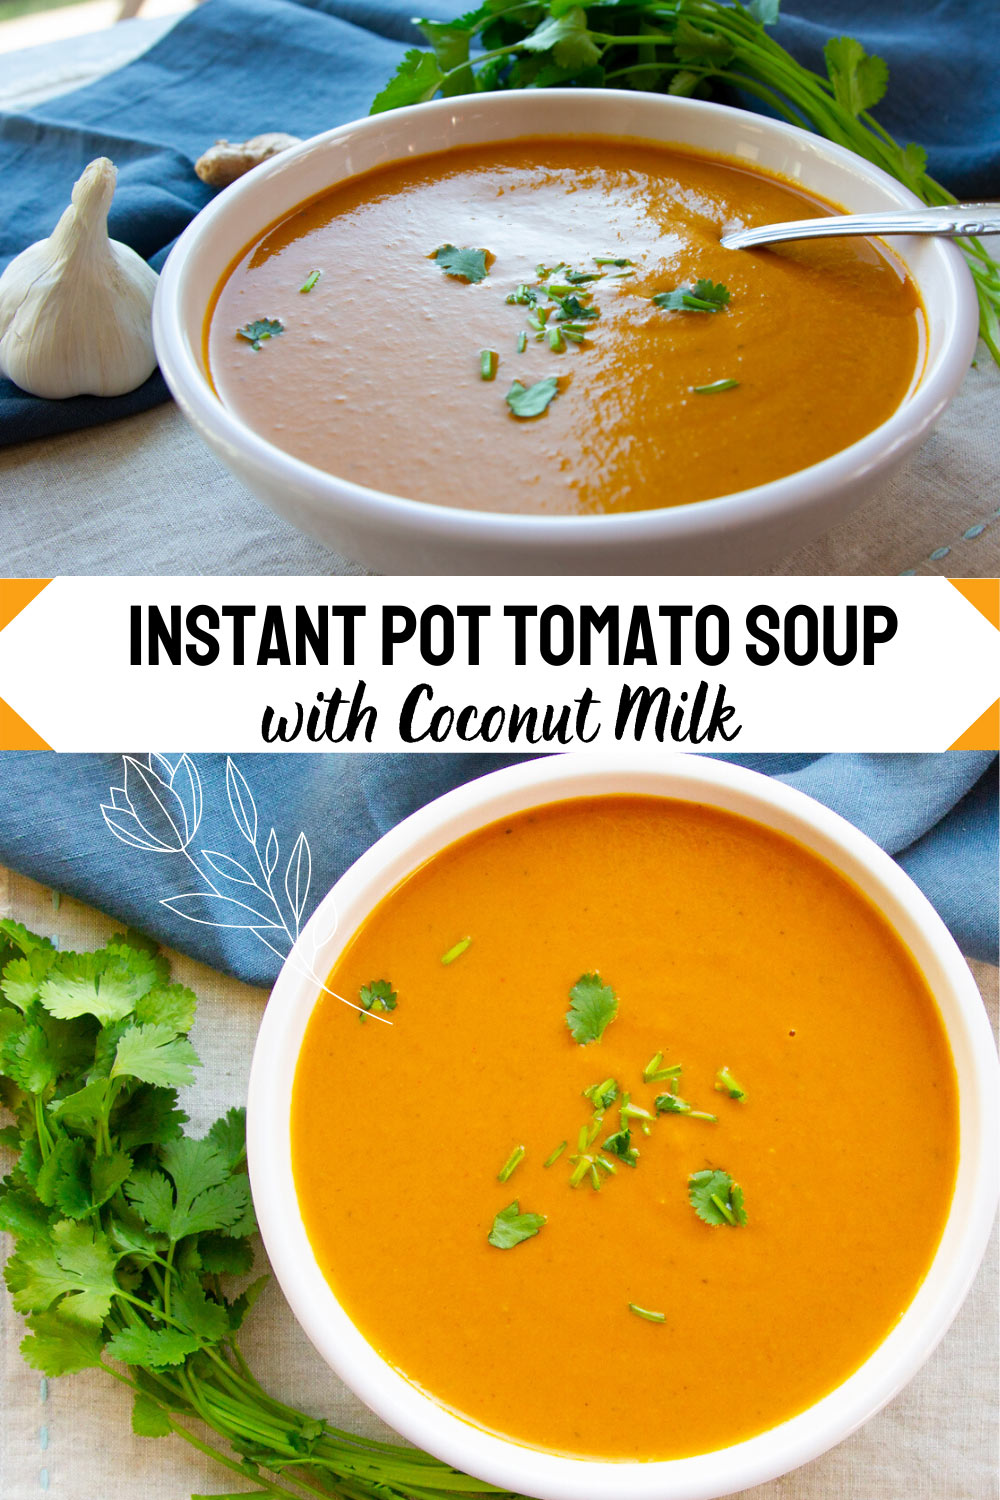 Instant Pot Tomato Soup With Coconut Milk